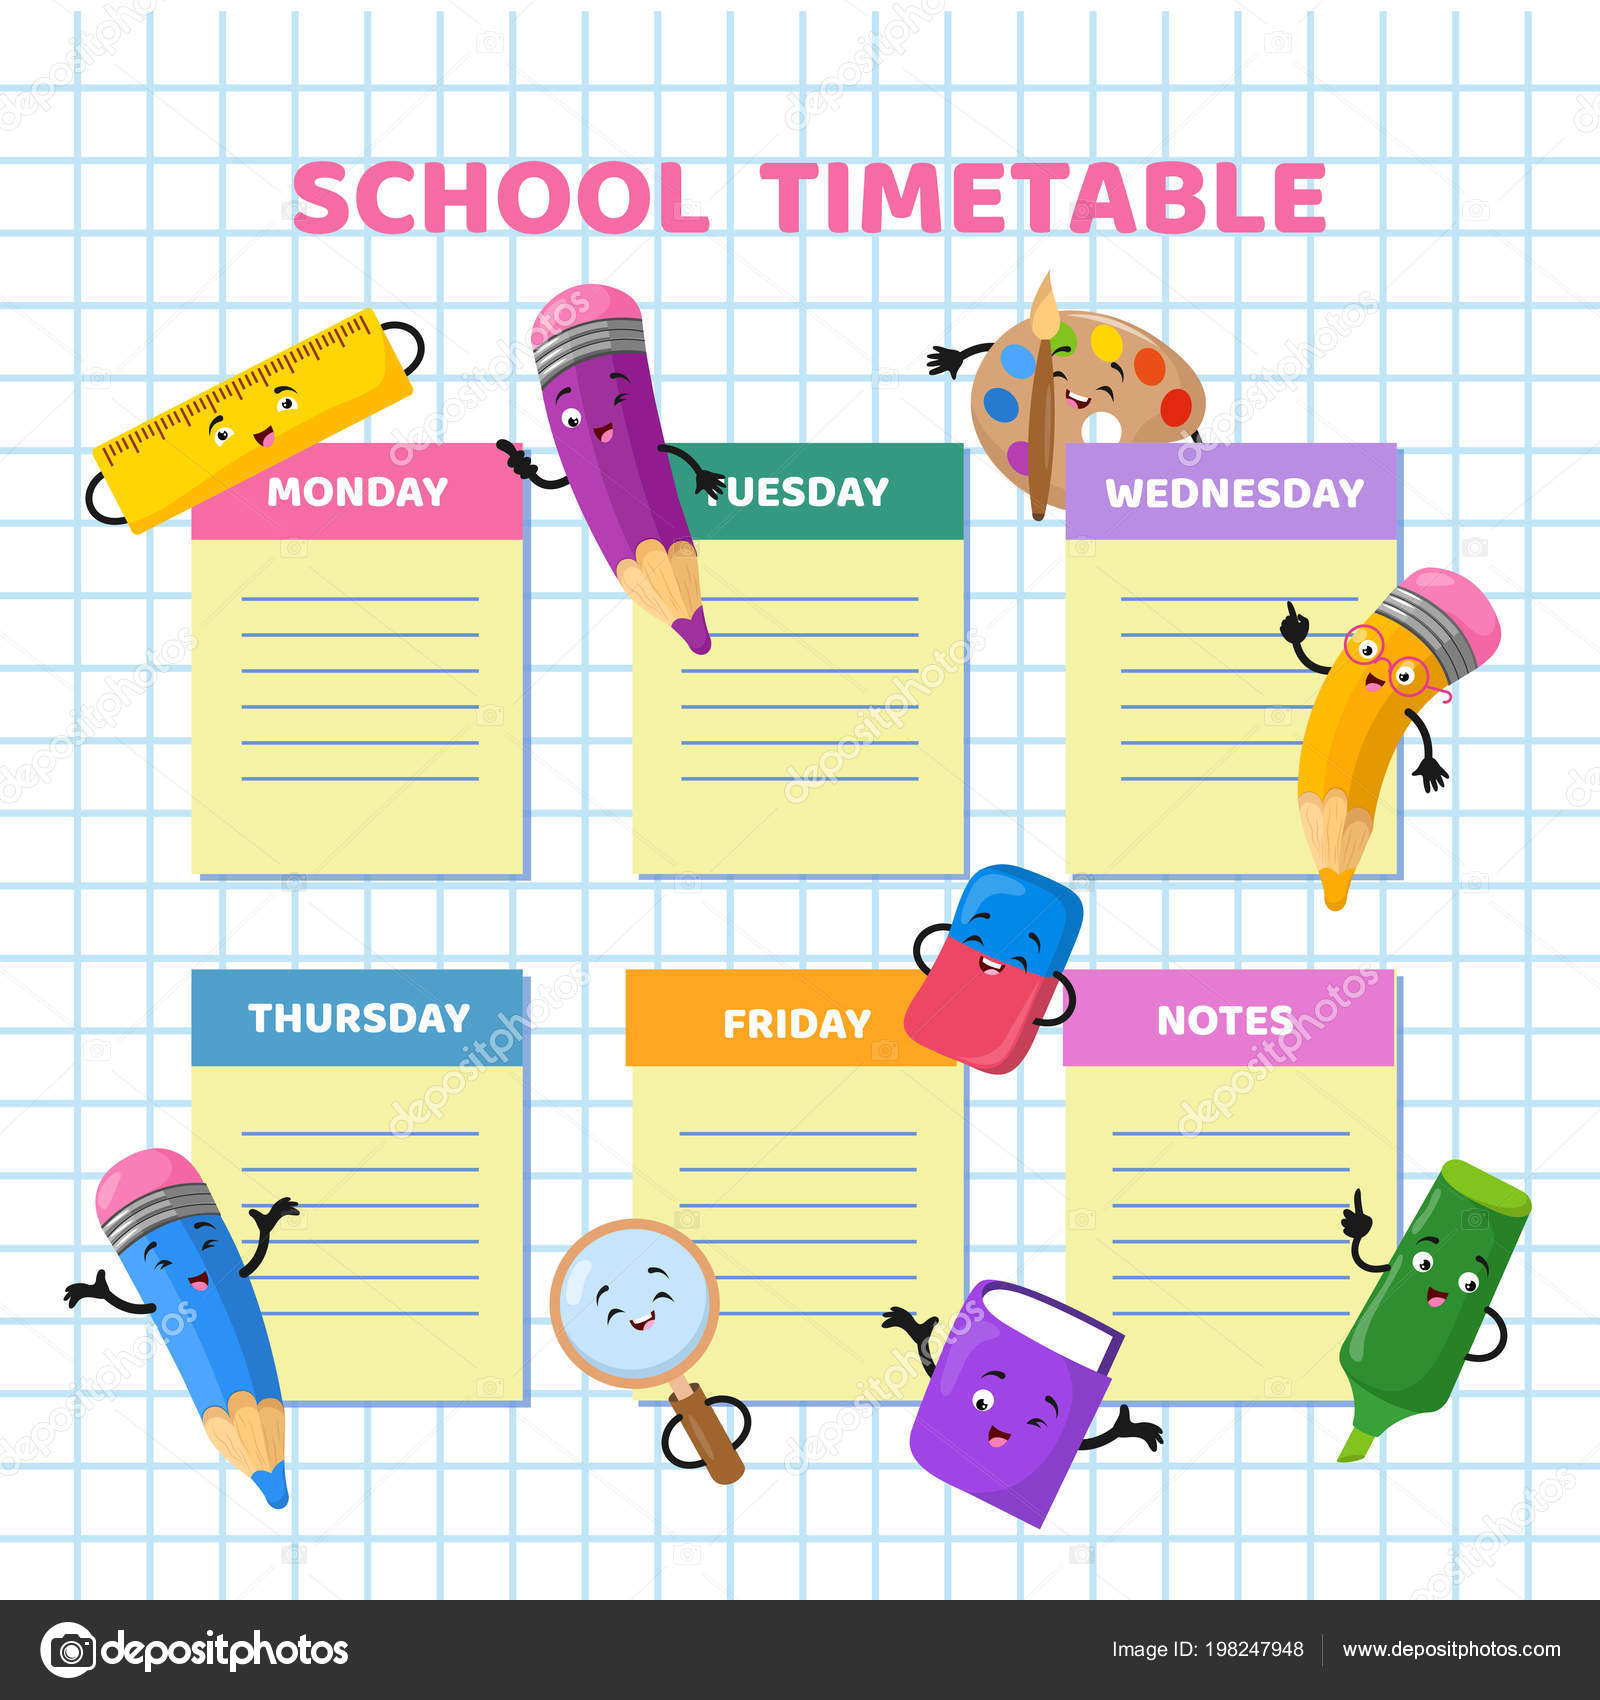 School timetable with funny cartoon stationery characters children school timetable with funny cartoon stationery characters children weekly class schedule vector template stock maxwellsz